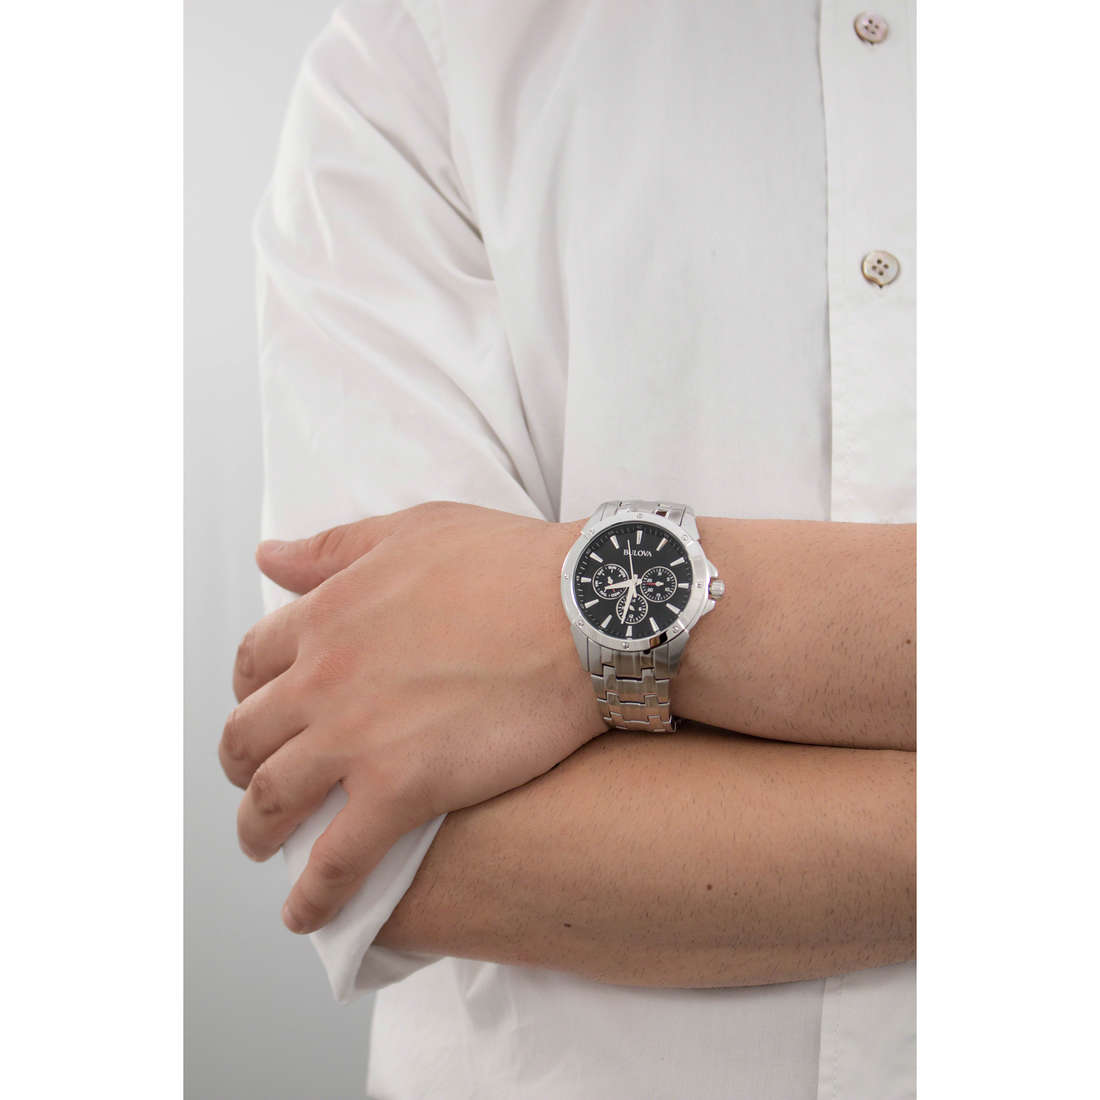 Bulova multifunction Dress man 96C107 indosso